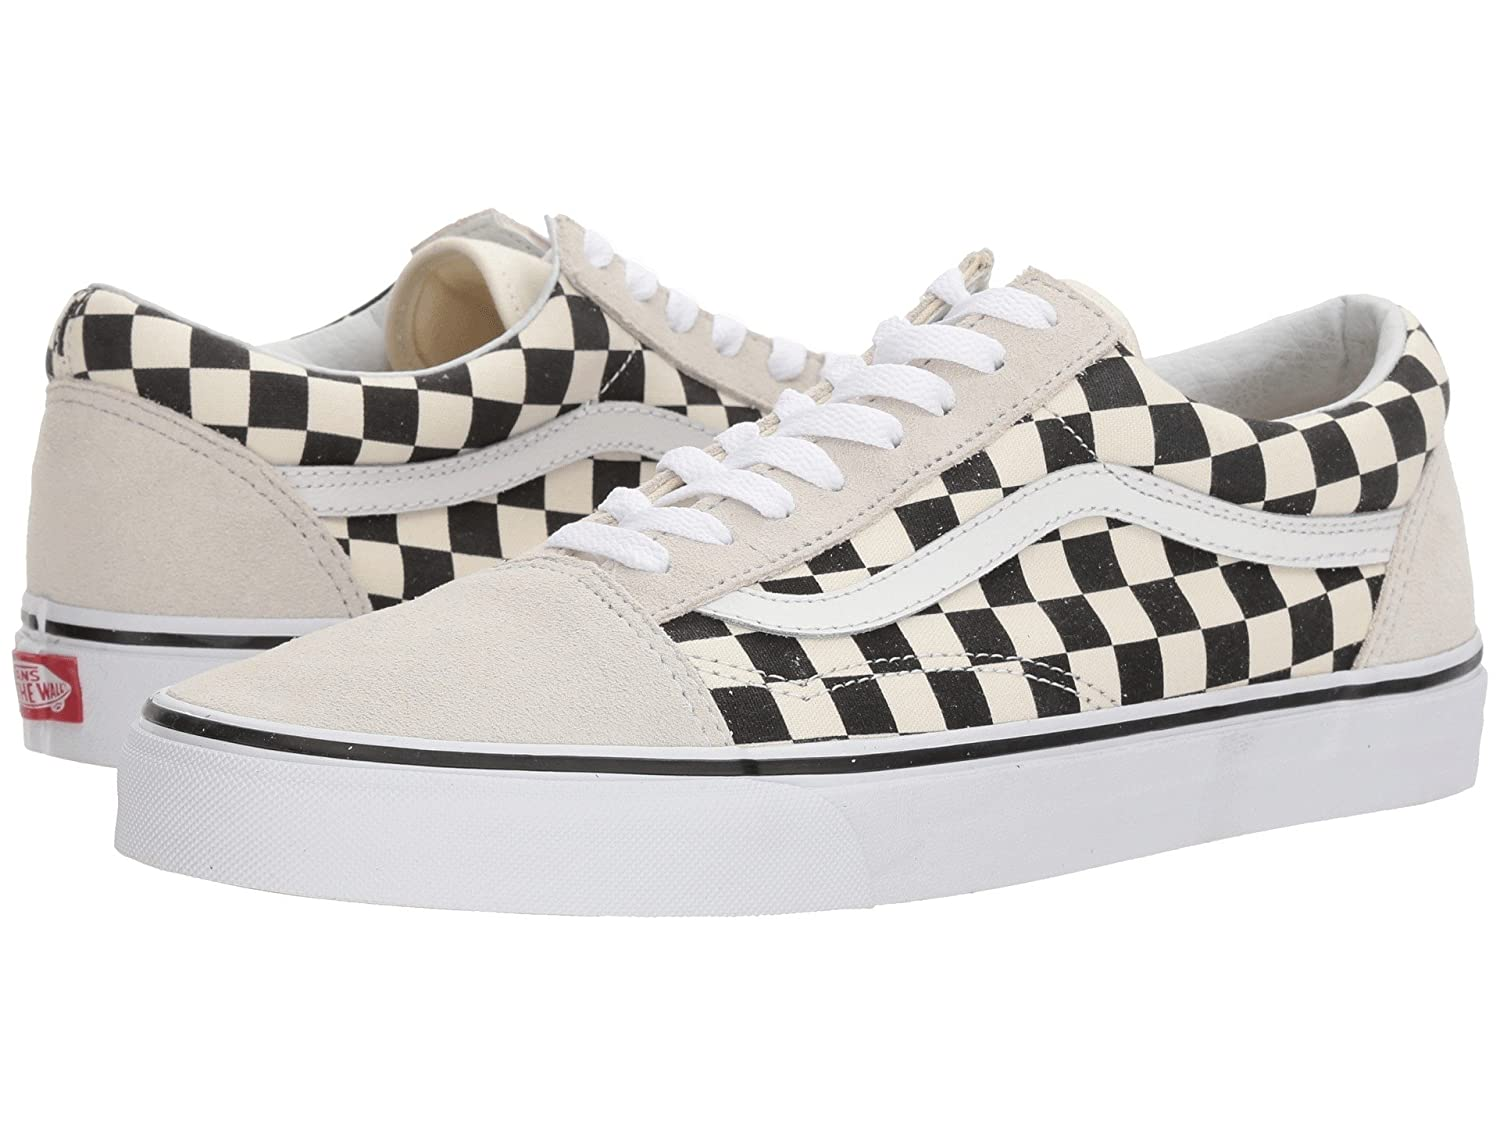 TALLA 36.5 EU. Vans U Old Skool - Zapatillas, Unisex Adulto